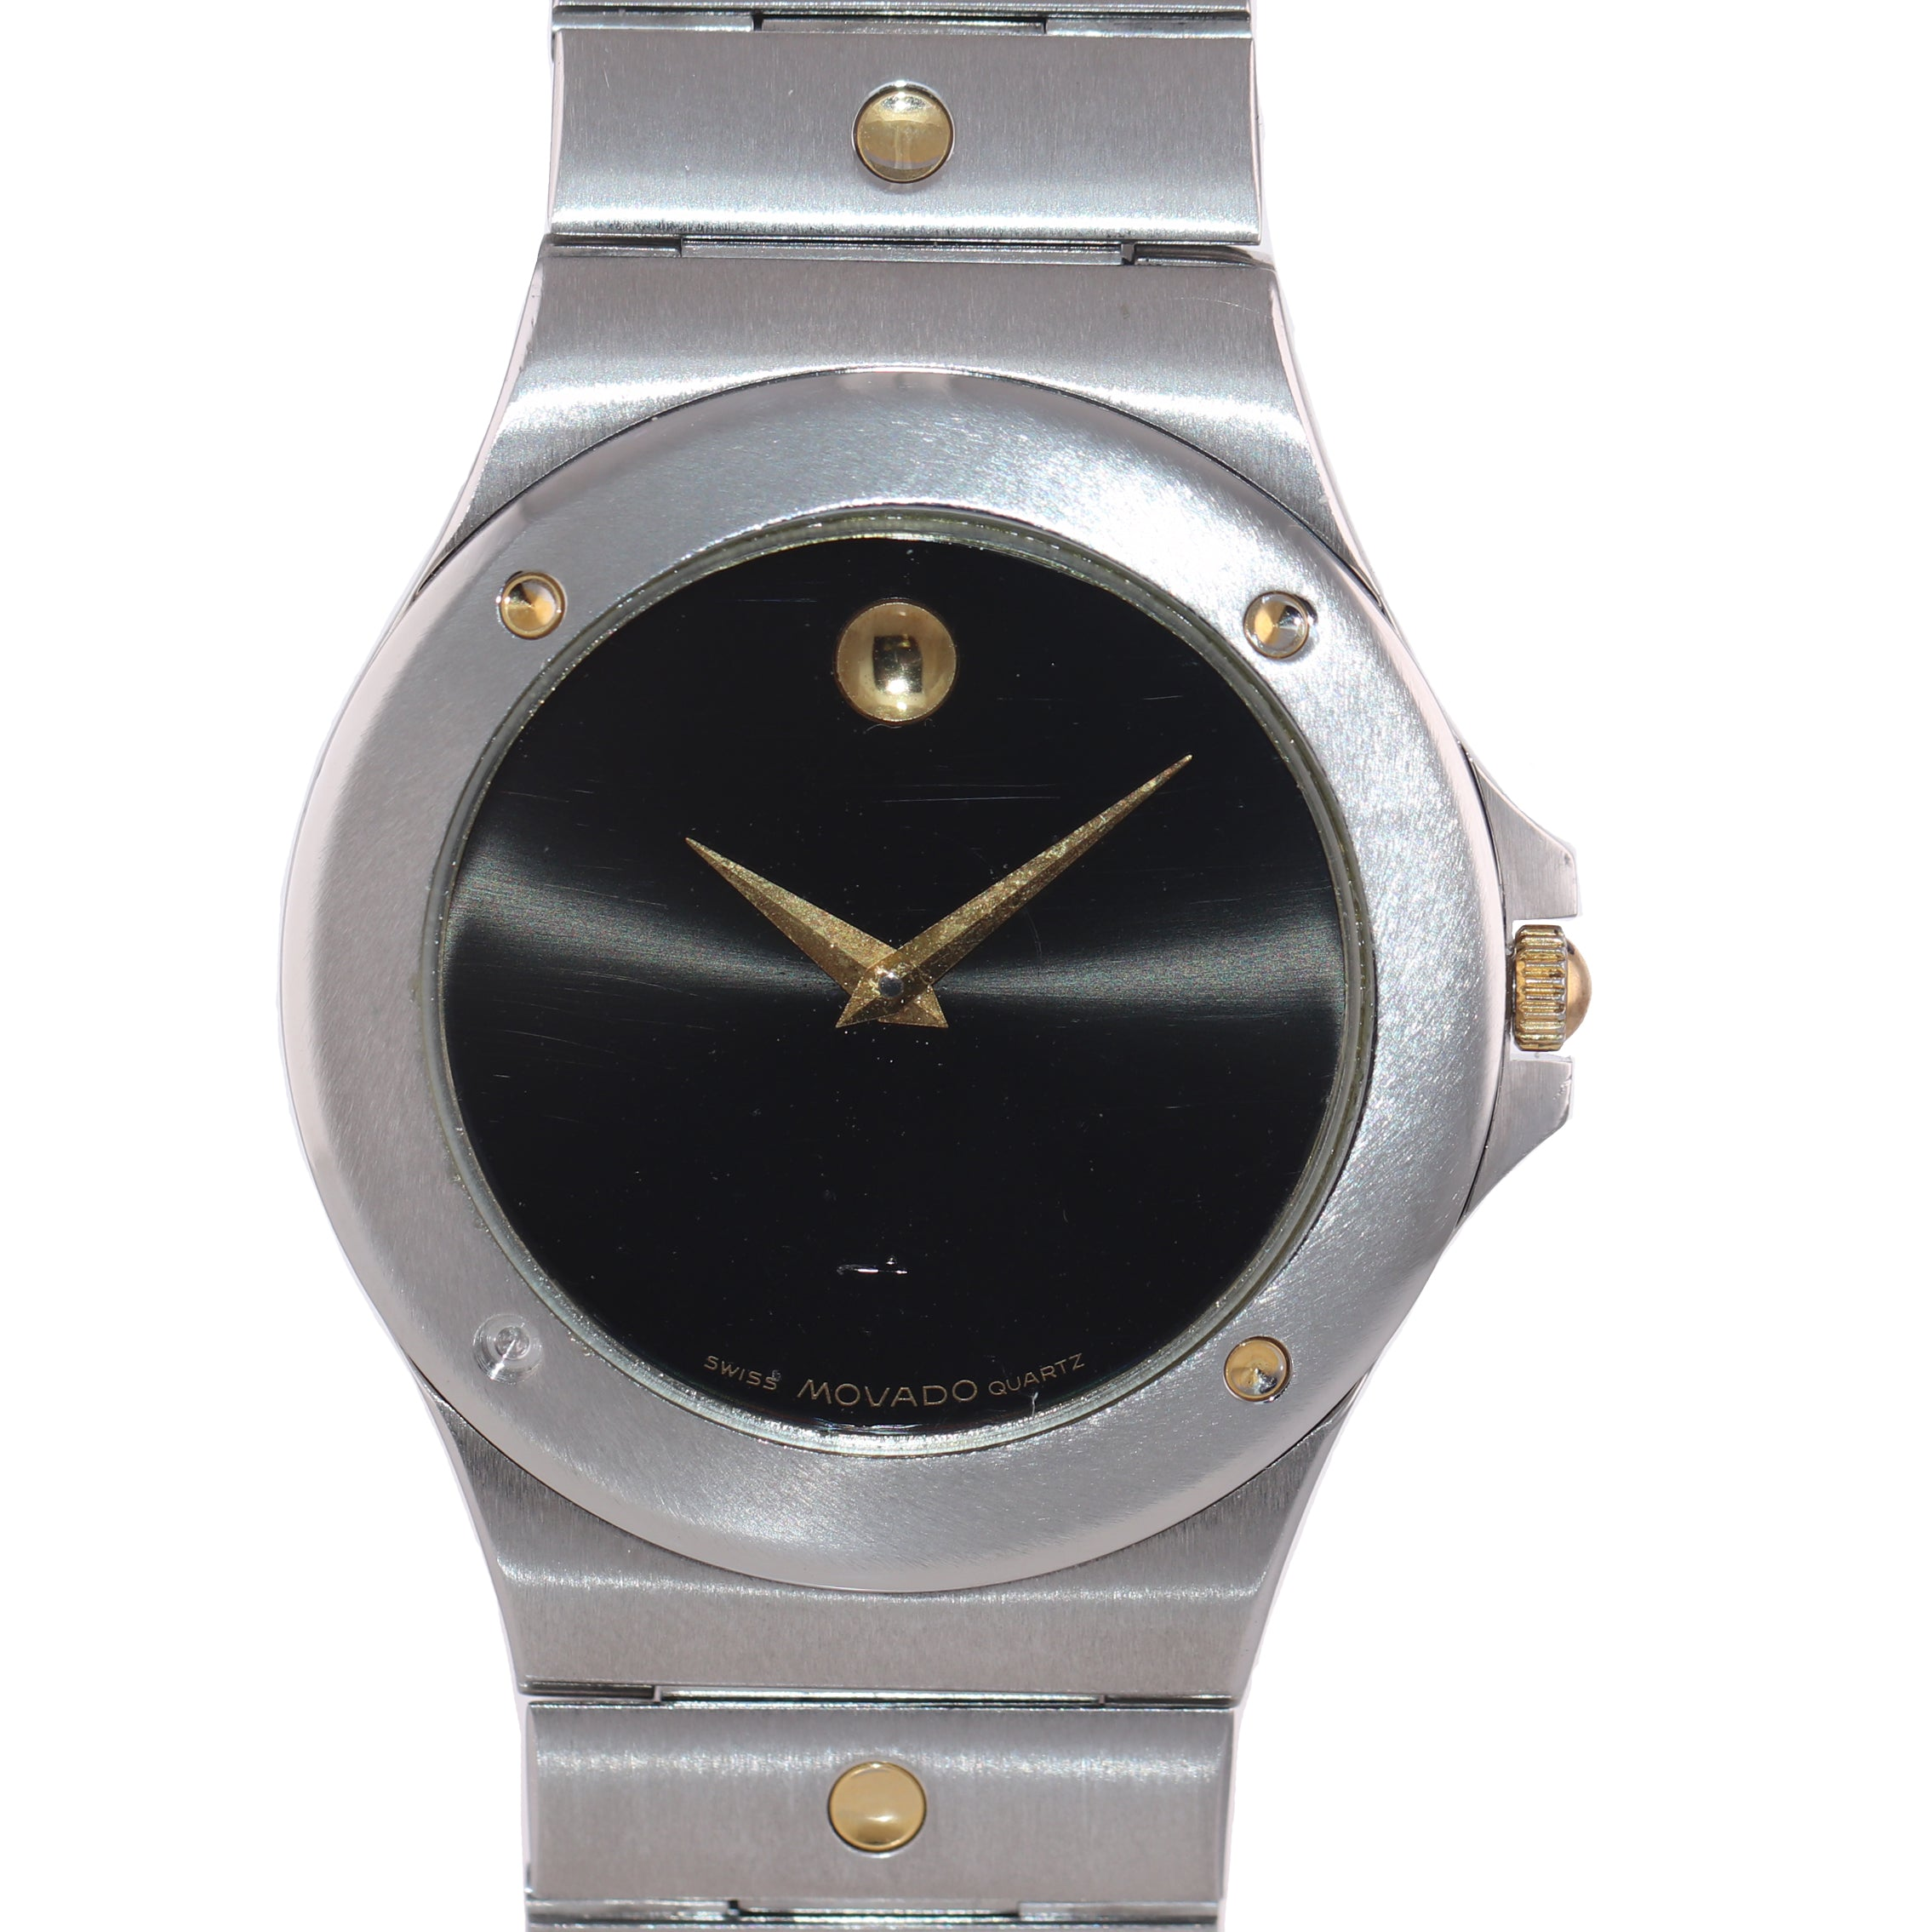 Movado Museum Stainless Steel Gold Tone 86.65.877.02 Quartz Watch